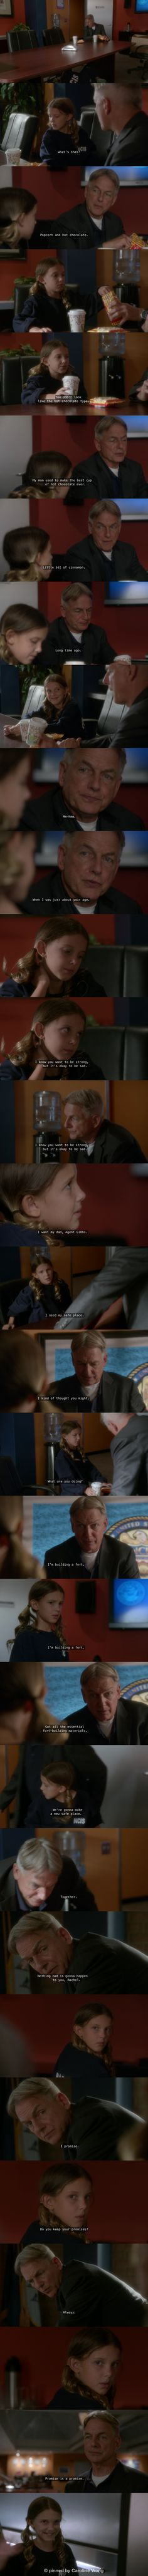 """Gibbs being fatherly :) scene between Gibbs and a young Rachel """"Parental Guidance Suggested"""" NCIS 12x06, pinned by   Caroline Wong  """